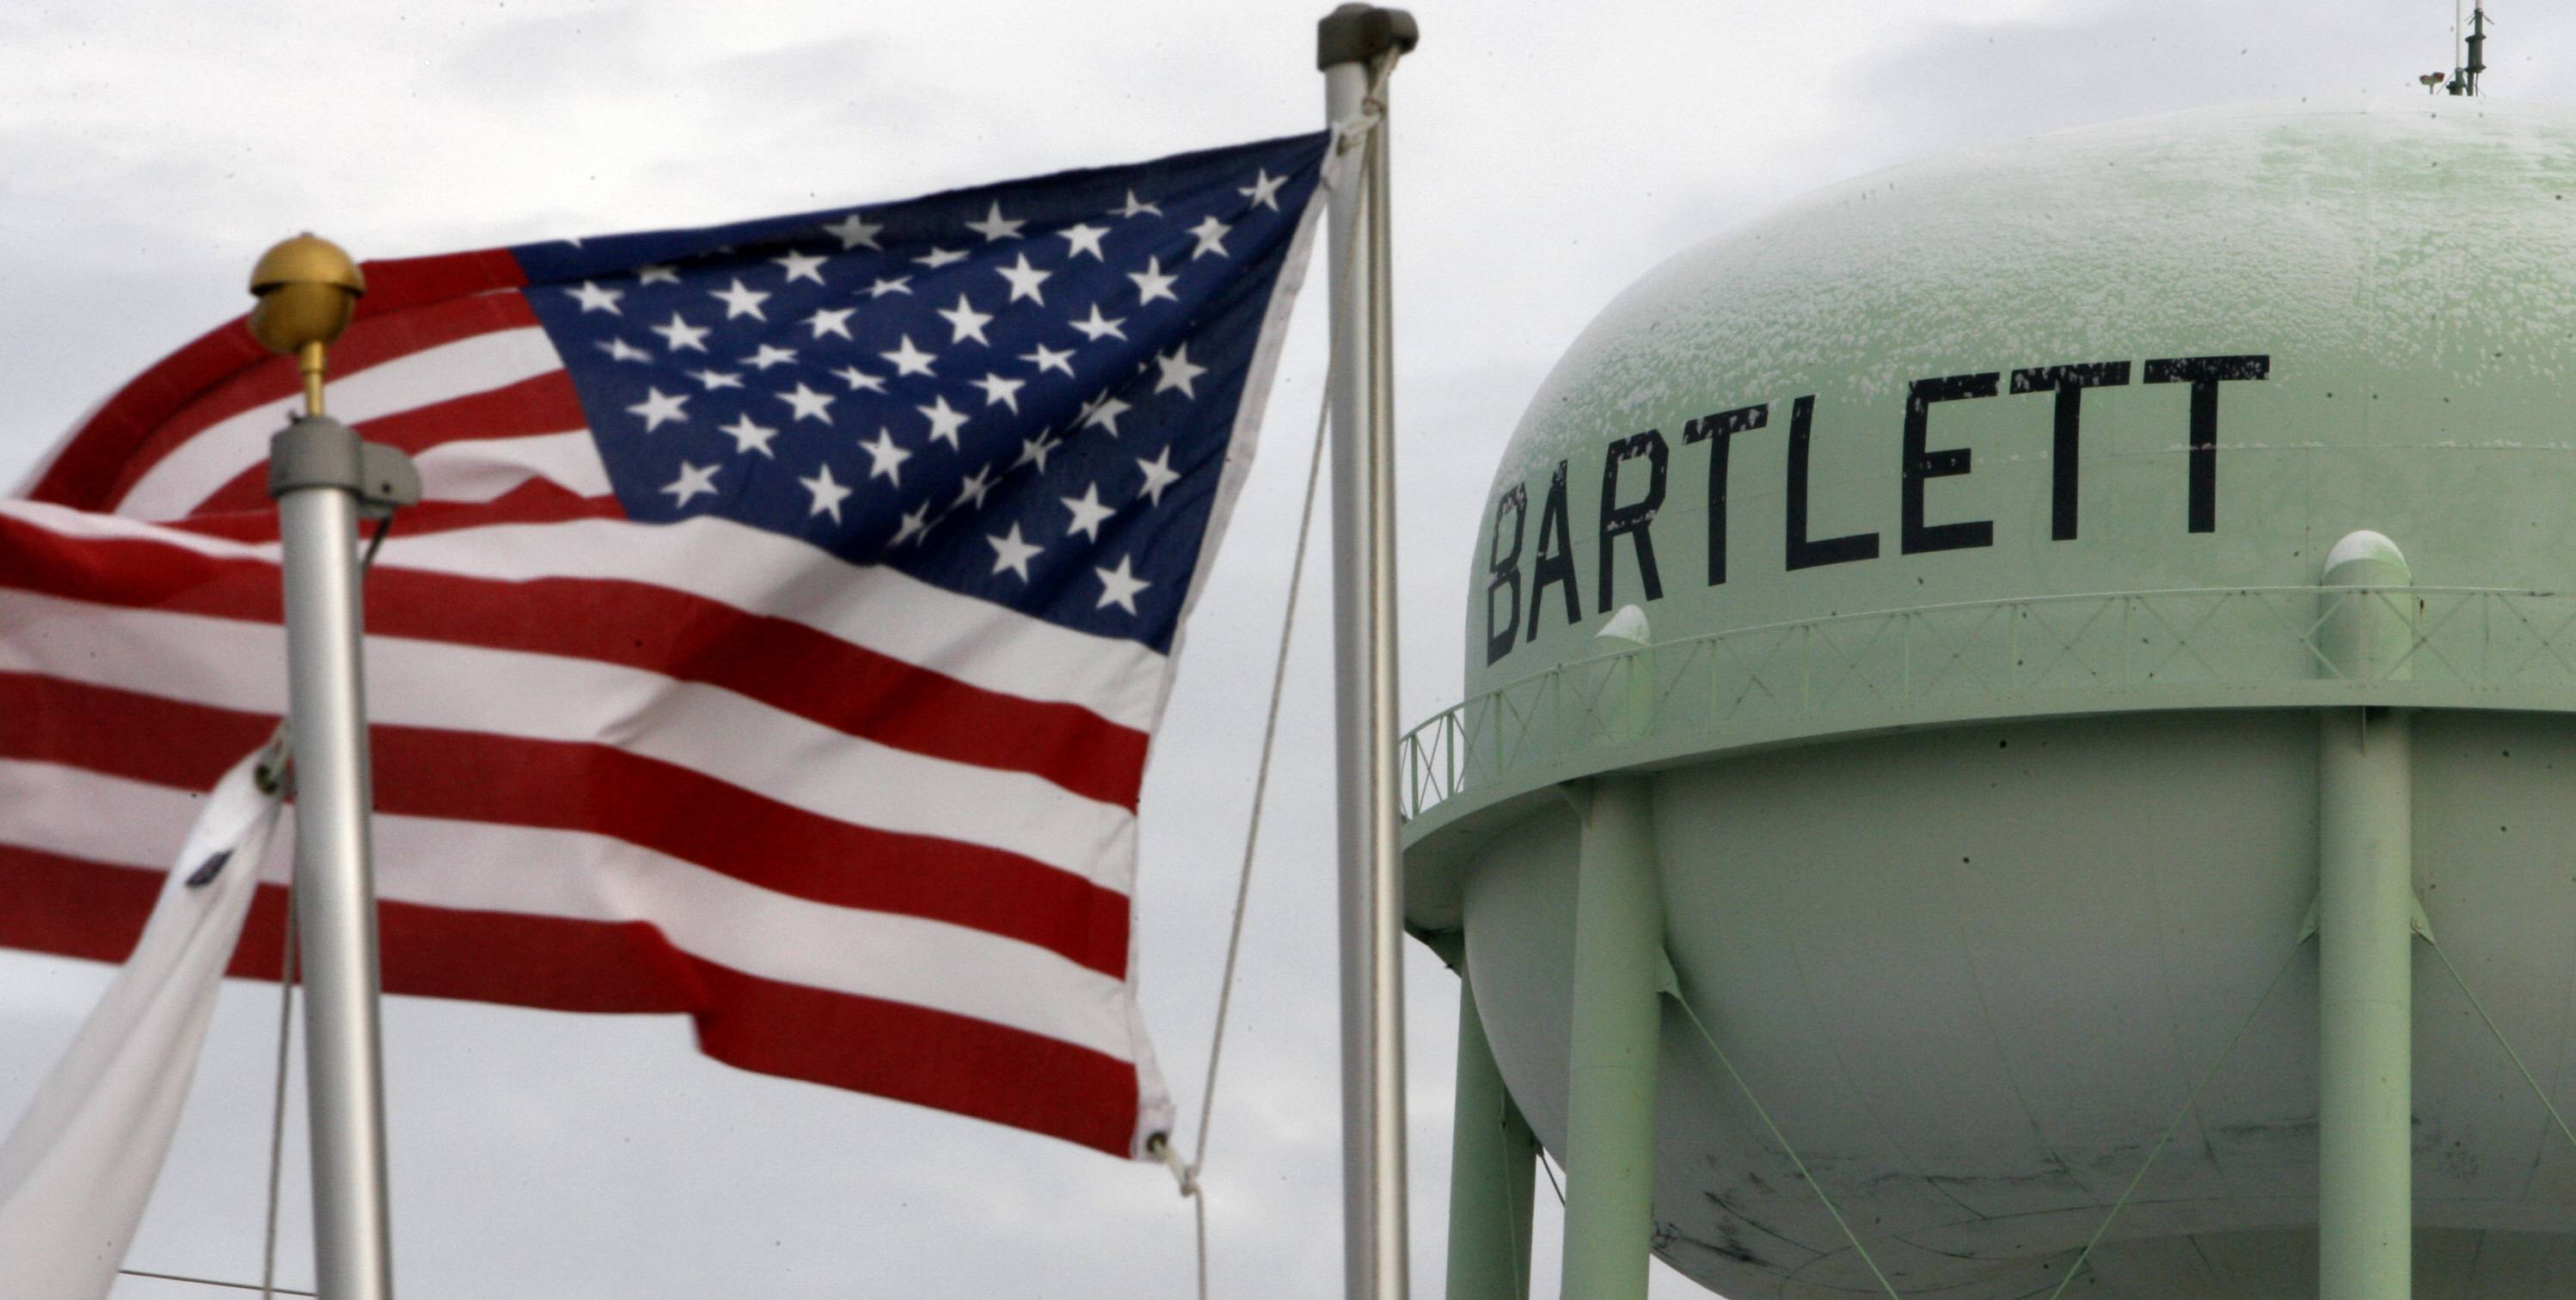 Bartlett to switch to Lake Michigan water in 2019